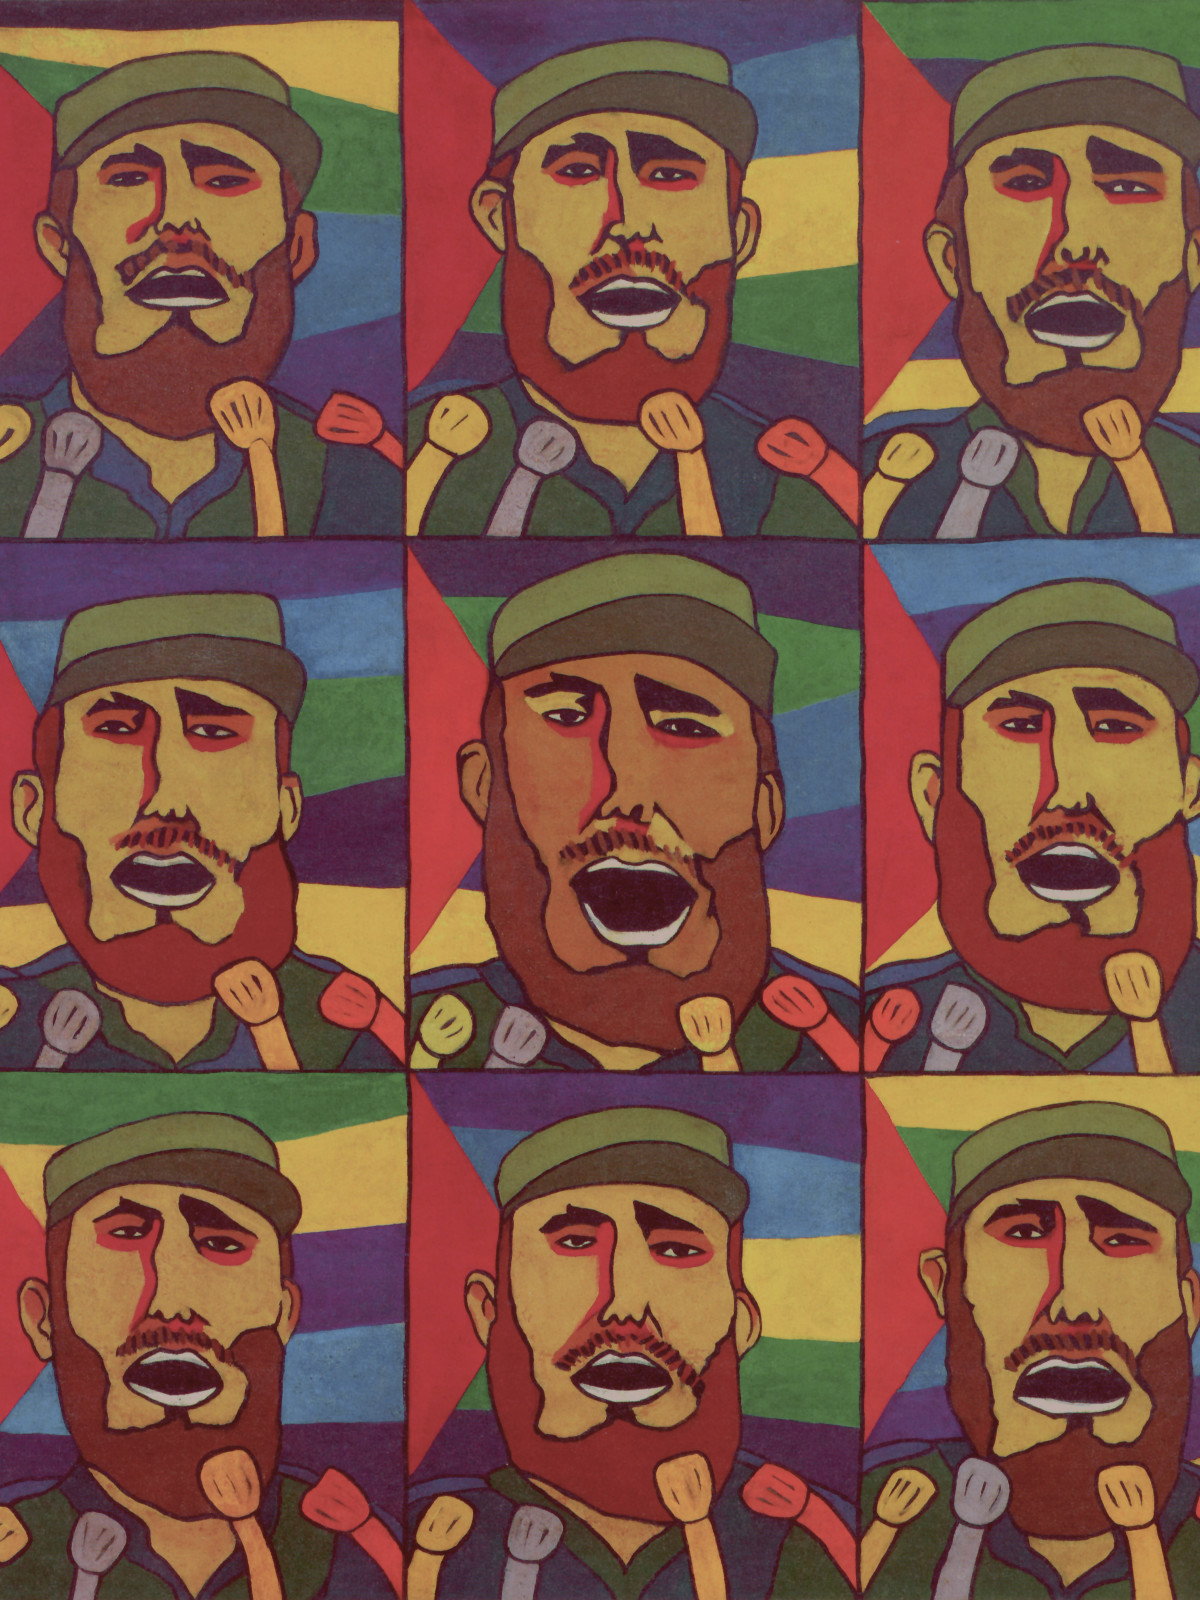 Adiós Utopia: 9 Repeticiones del Fidel con Micrófono (9 Repetitions of Fidel with a Microphone)